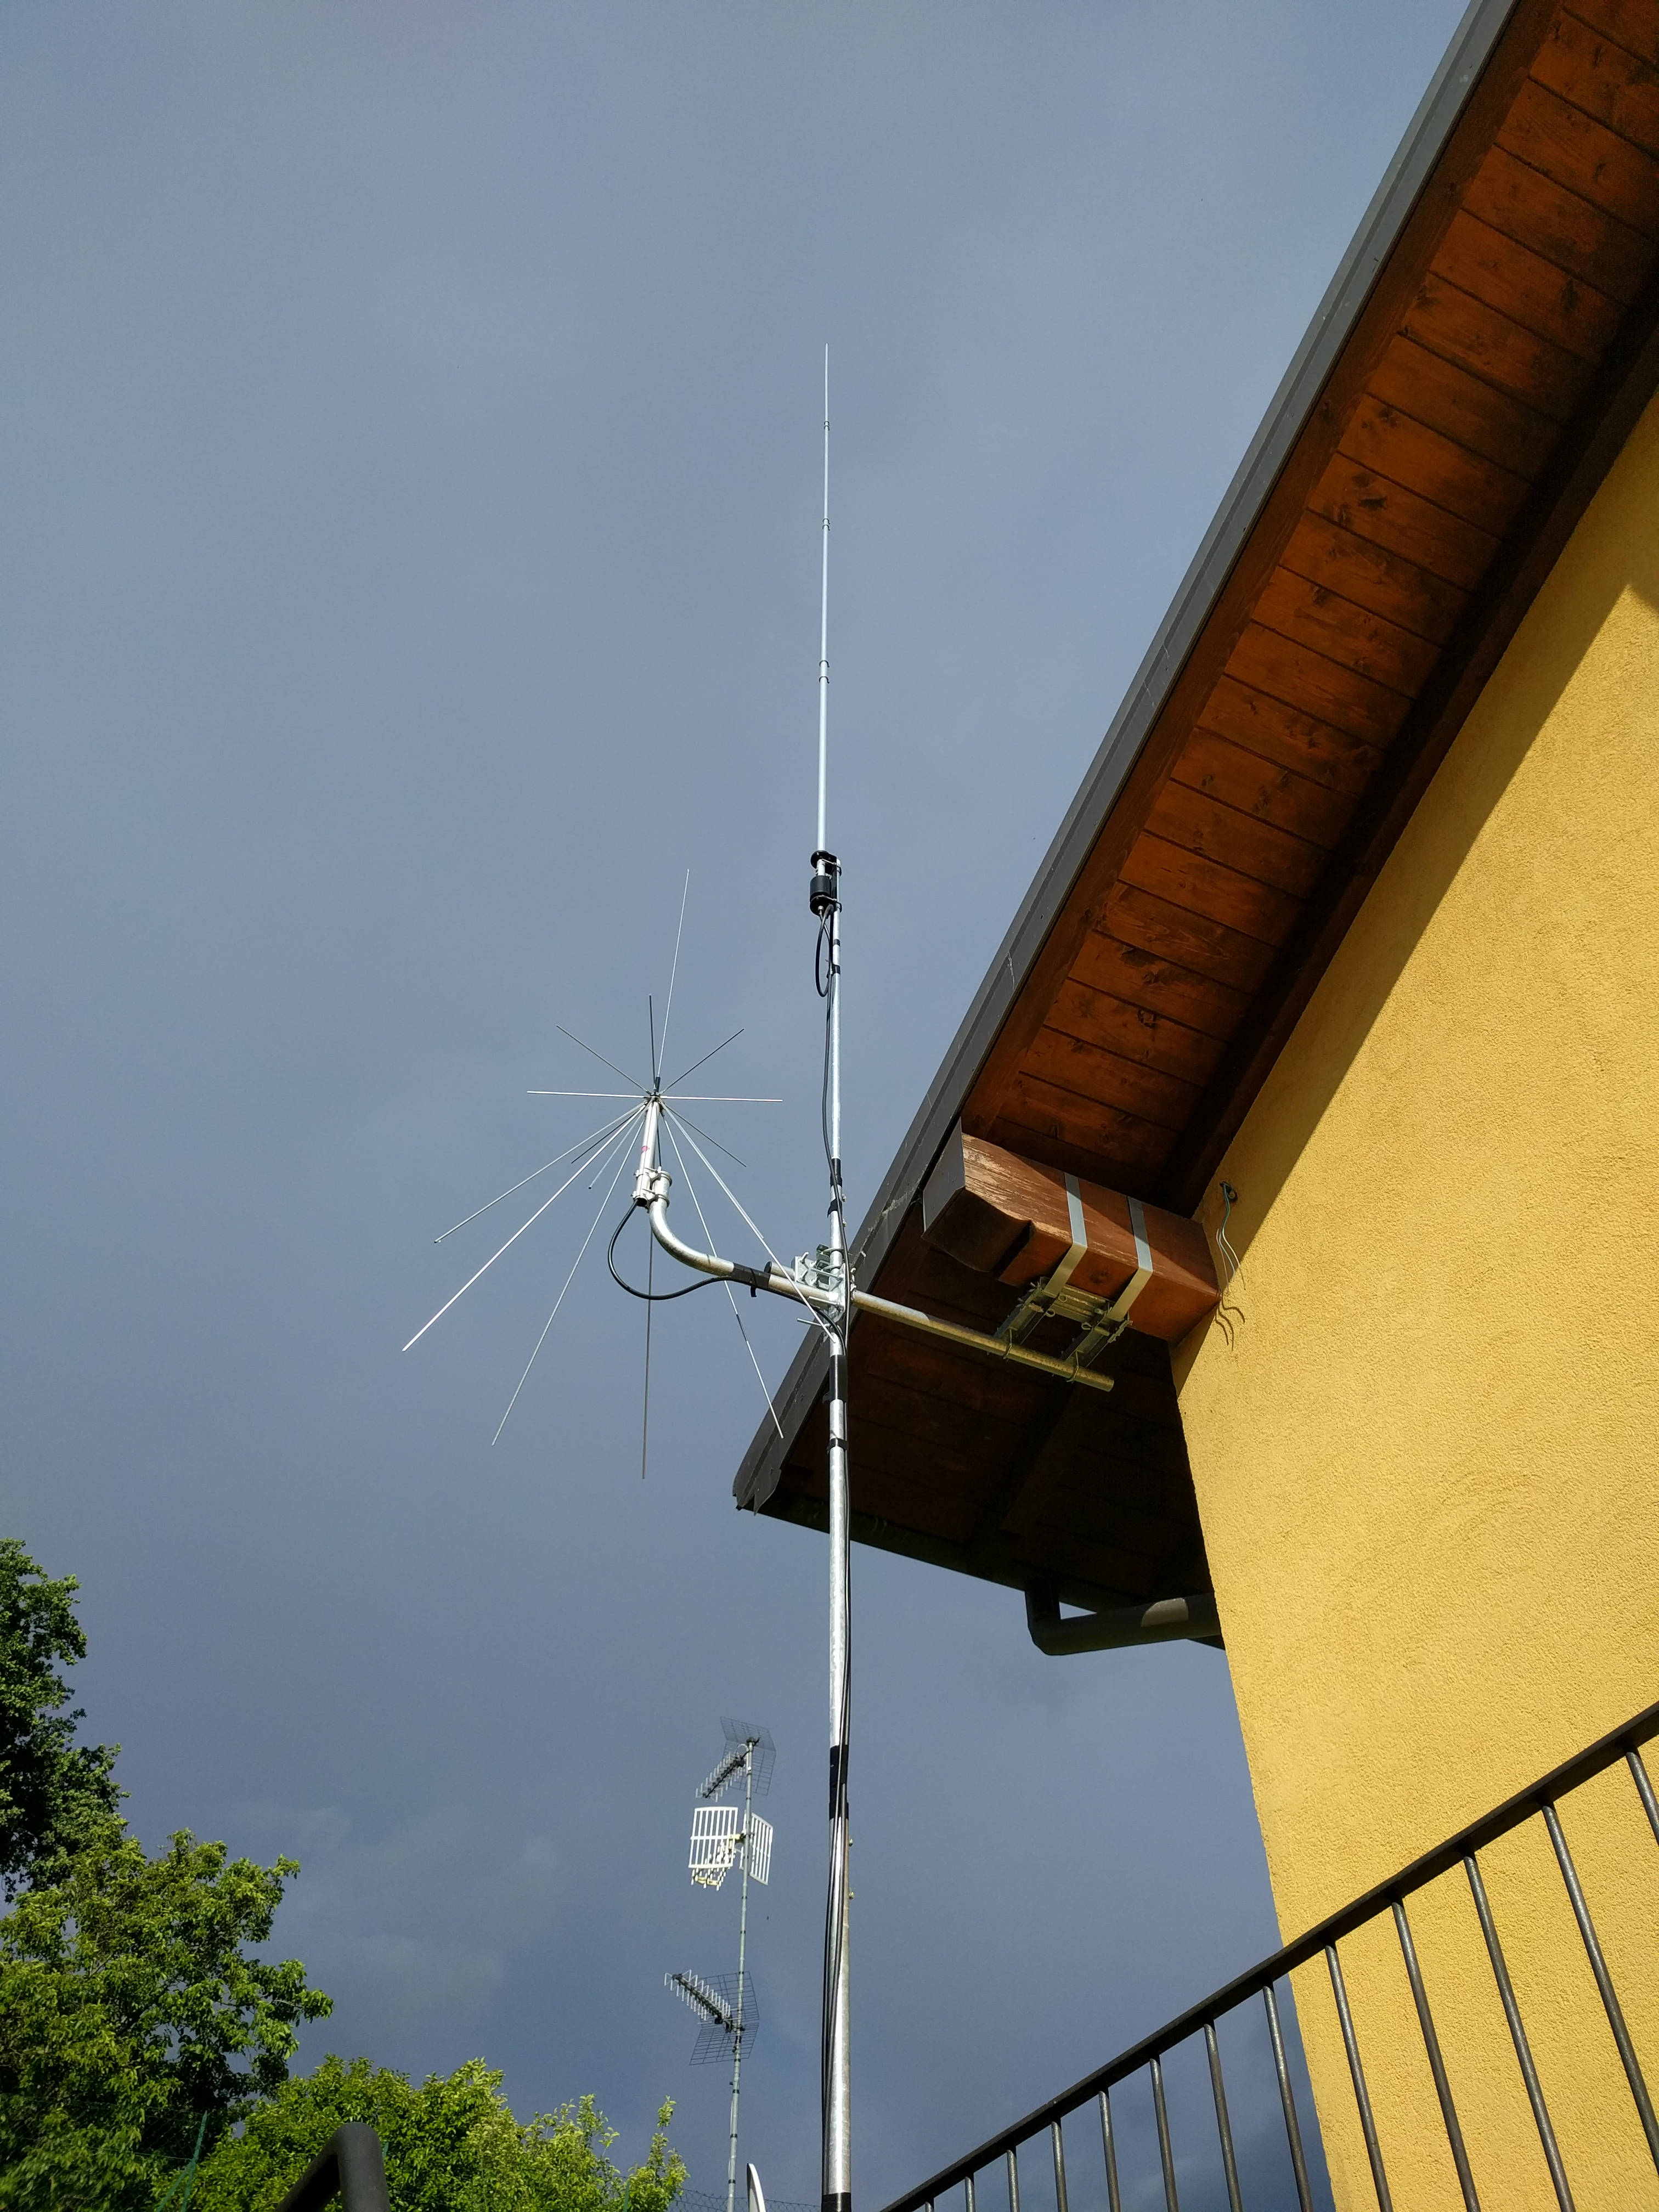 Homemade Uhf Antenna